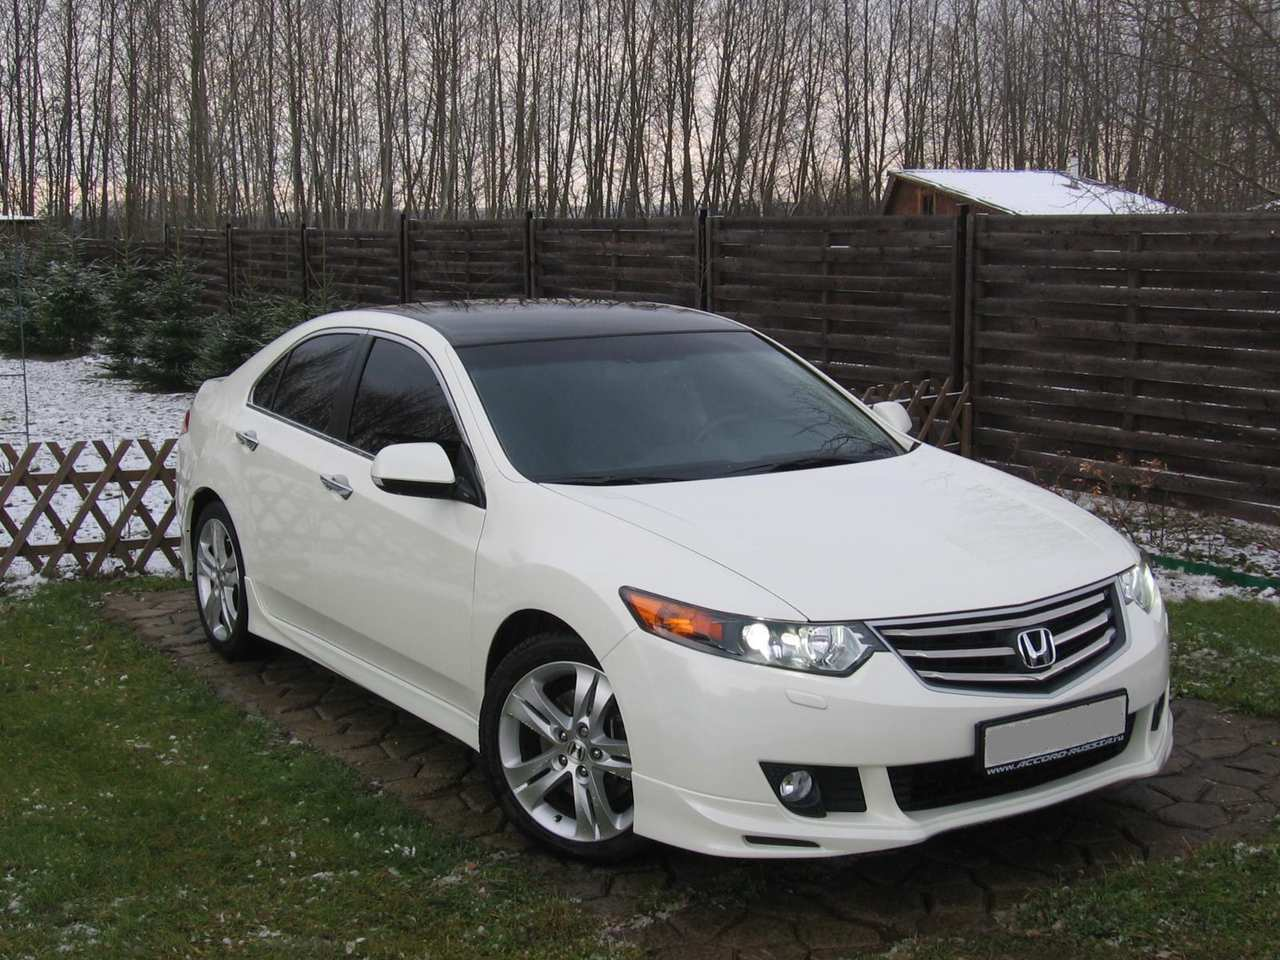 Used 2008 honda accord photos 2400cc gasoline ff for Used honda accords